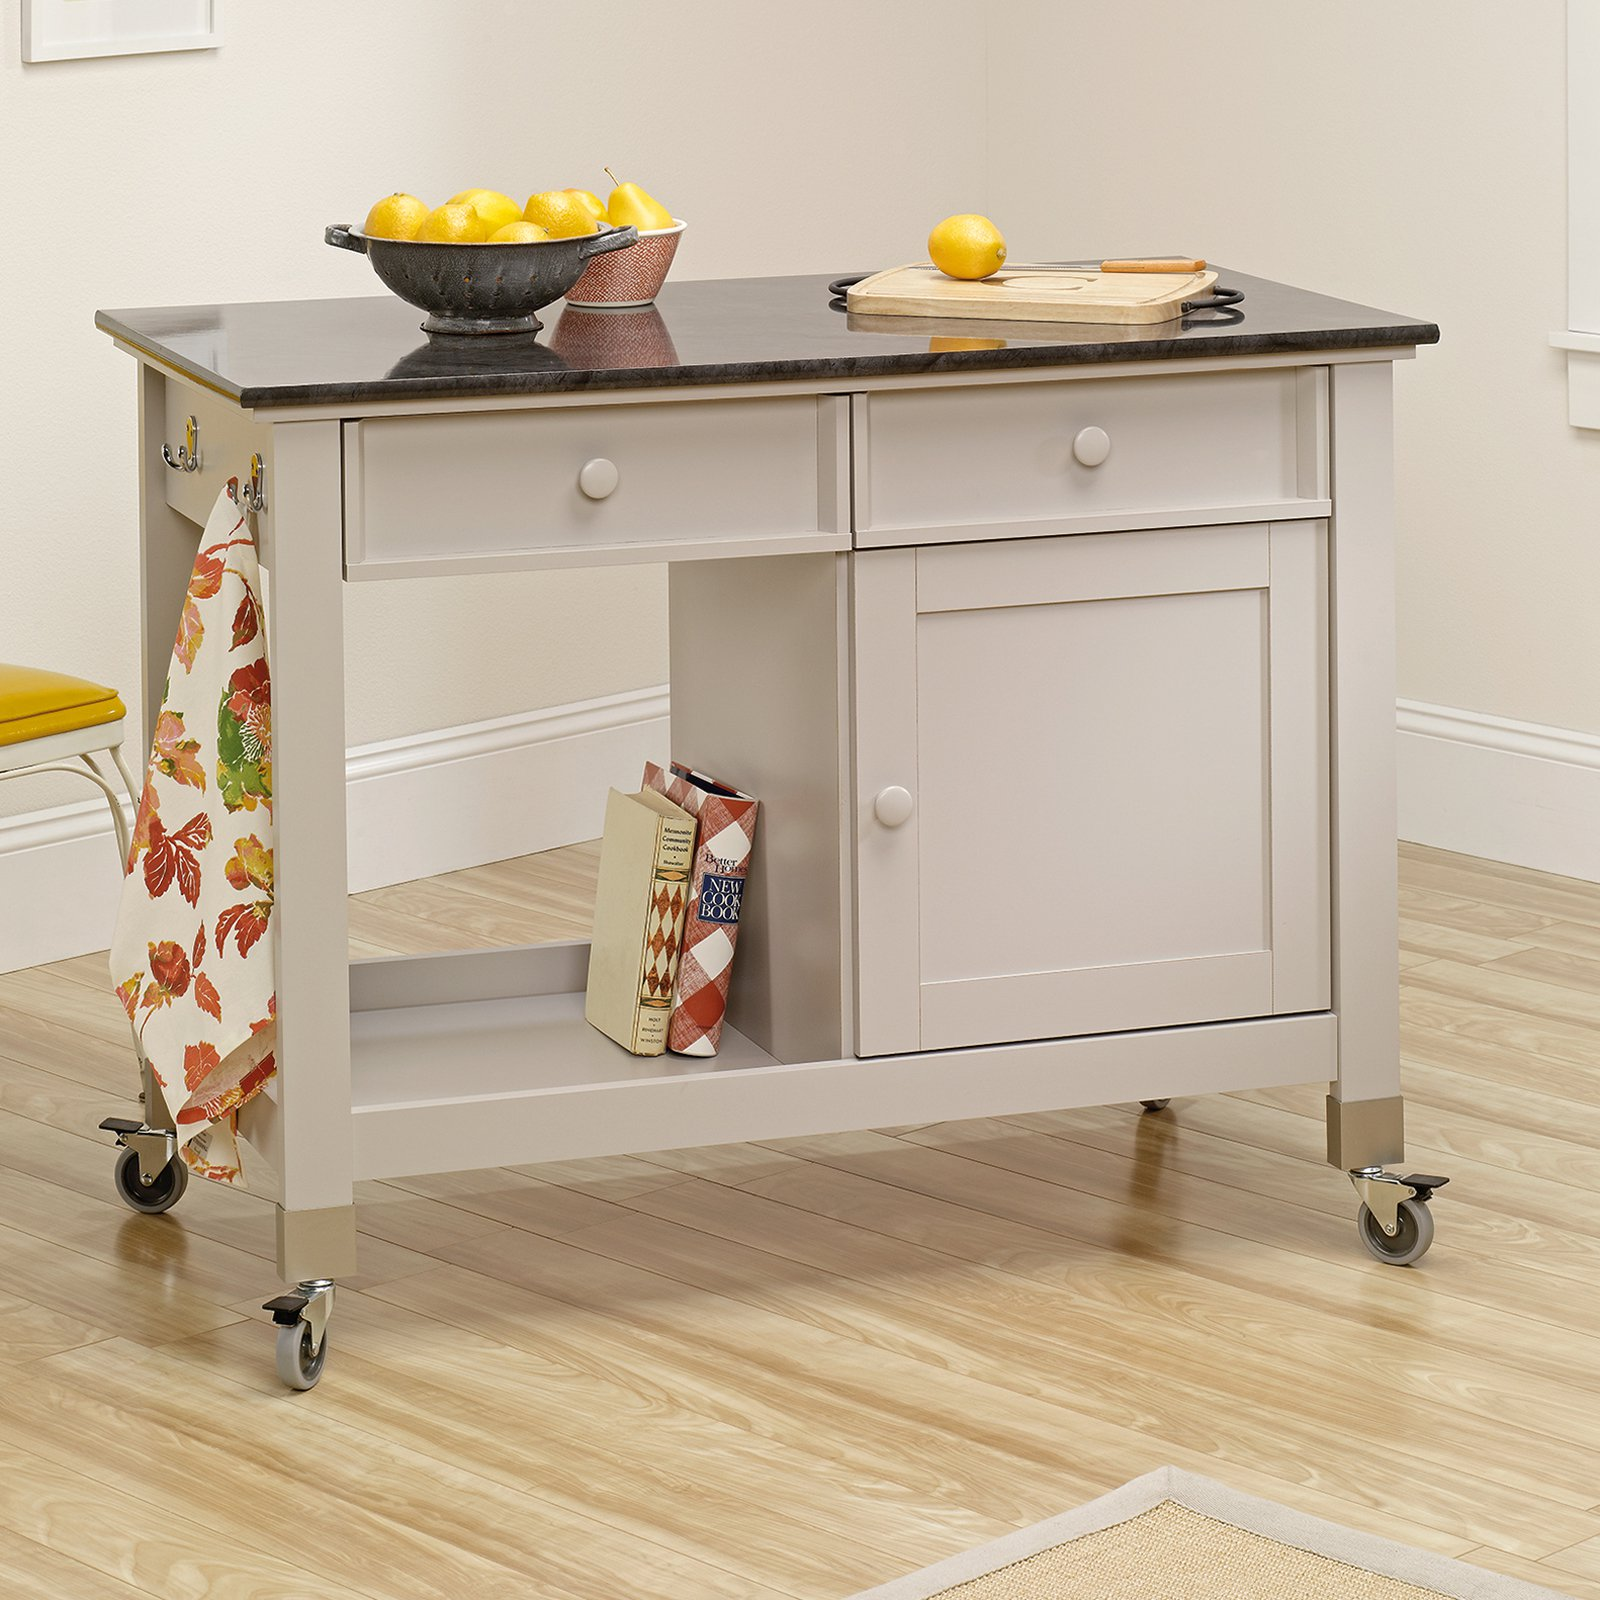 Sauder Cottage Collection Mobile Kitchen Island - Cobblestone Finish